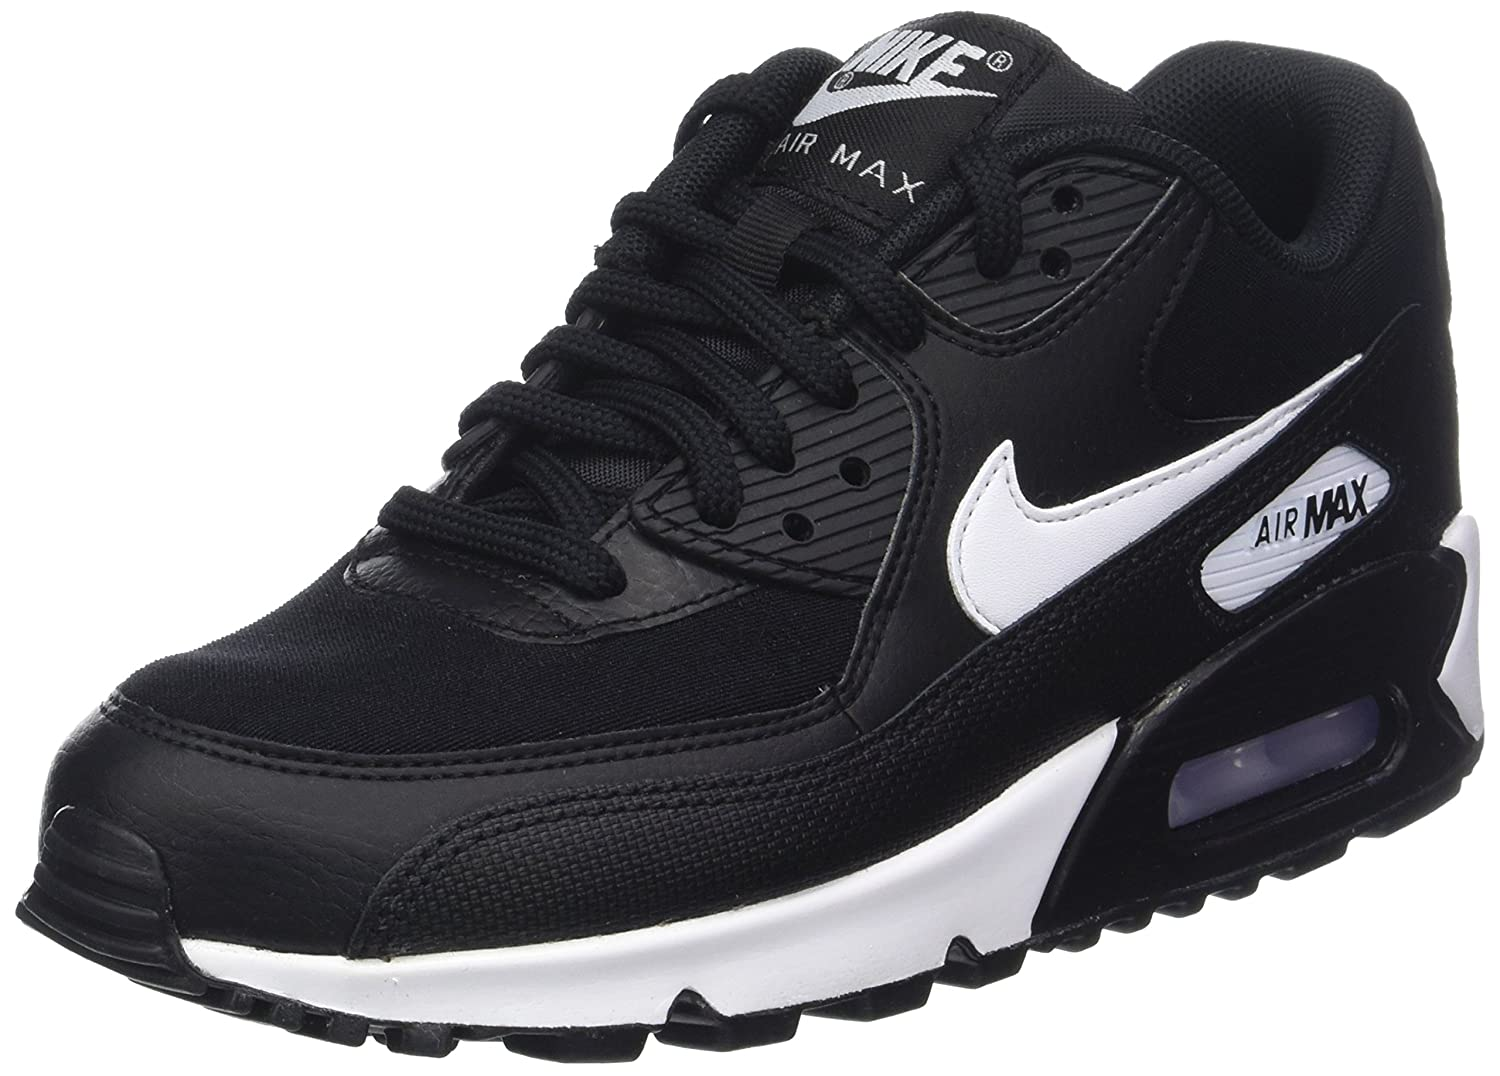 on sale e1aa9 72a70 Nike Air Max 90 Scarpe da Ginnastica Basse Donna  Amazon.it  Scarpe e borse